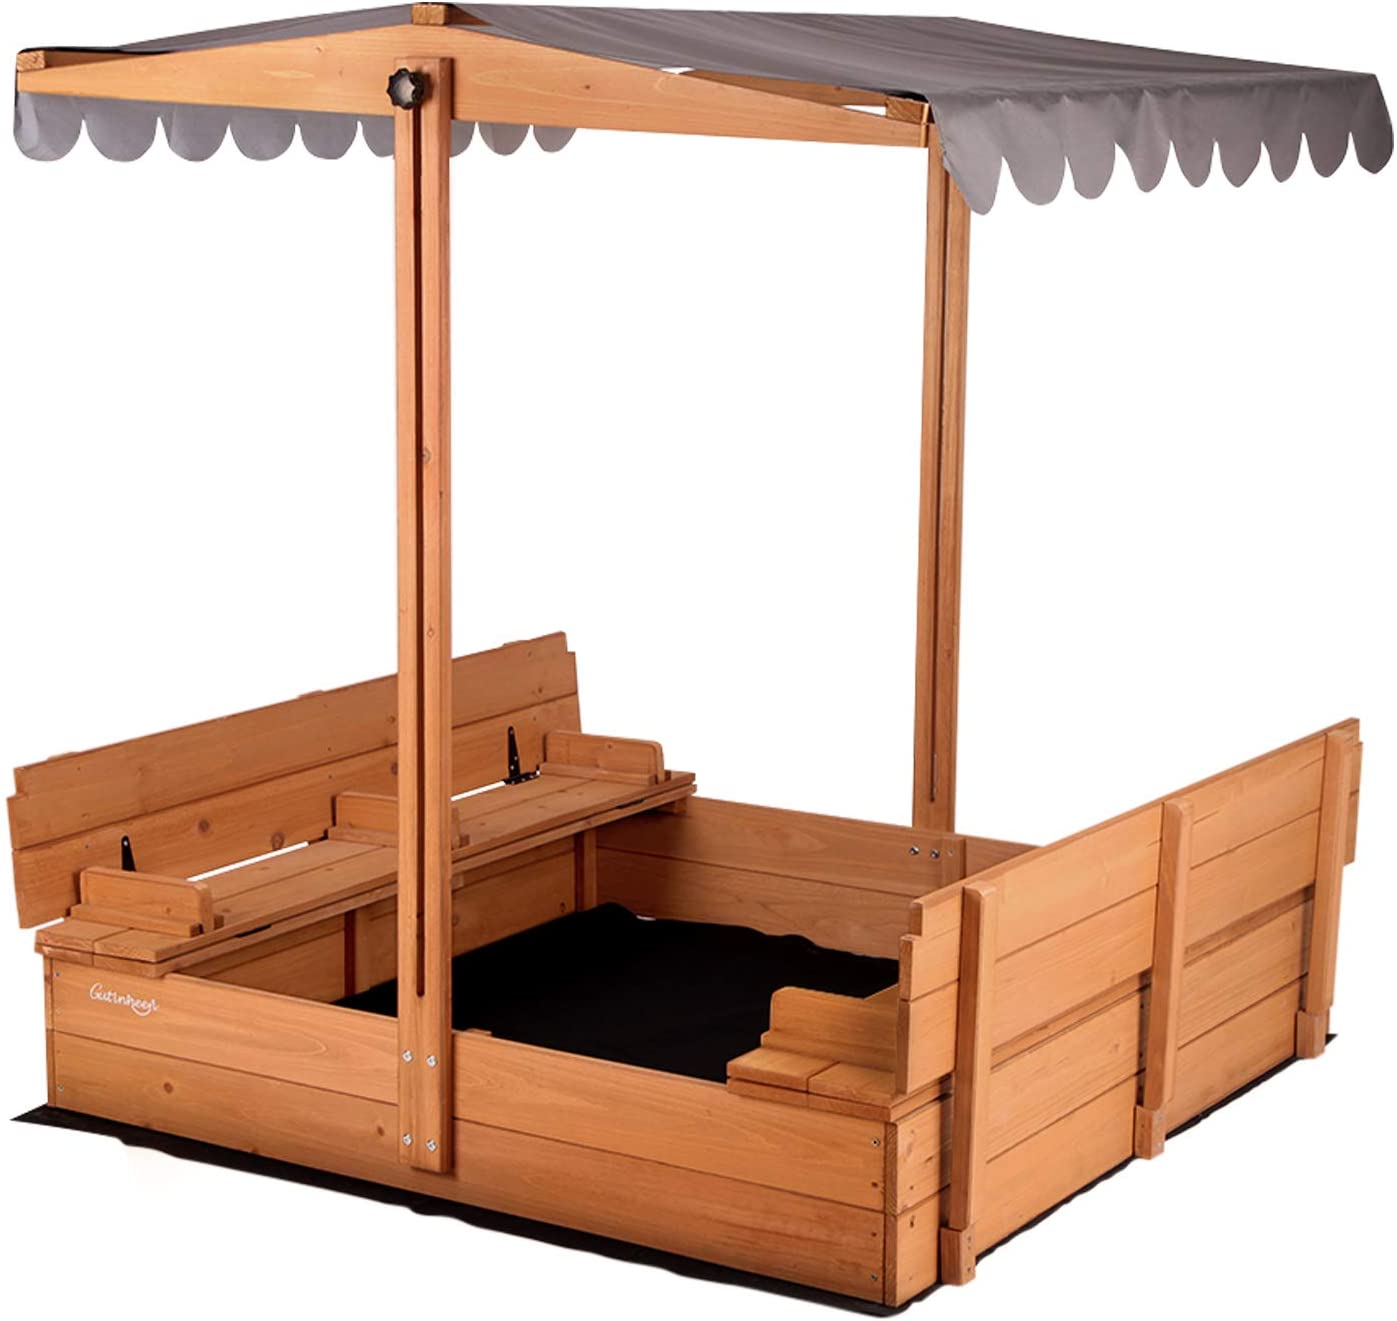 Amazon Com Aivituvin Kids Sand Boxes With Canopy Sandboxes With Covers Foldable Bench Seats Children Outdoor Wooden Playset Upgrade Retractable Roof 47x47inch Toys Games